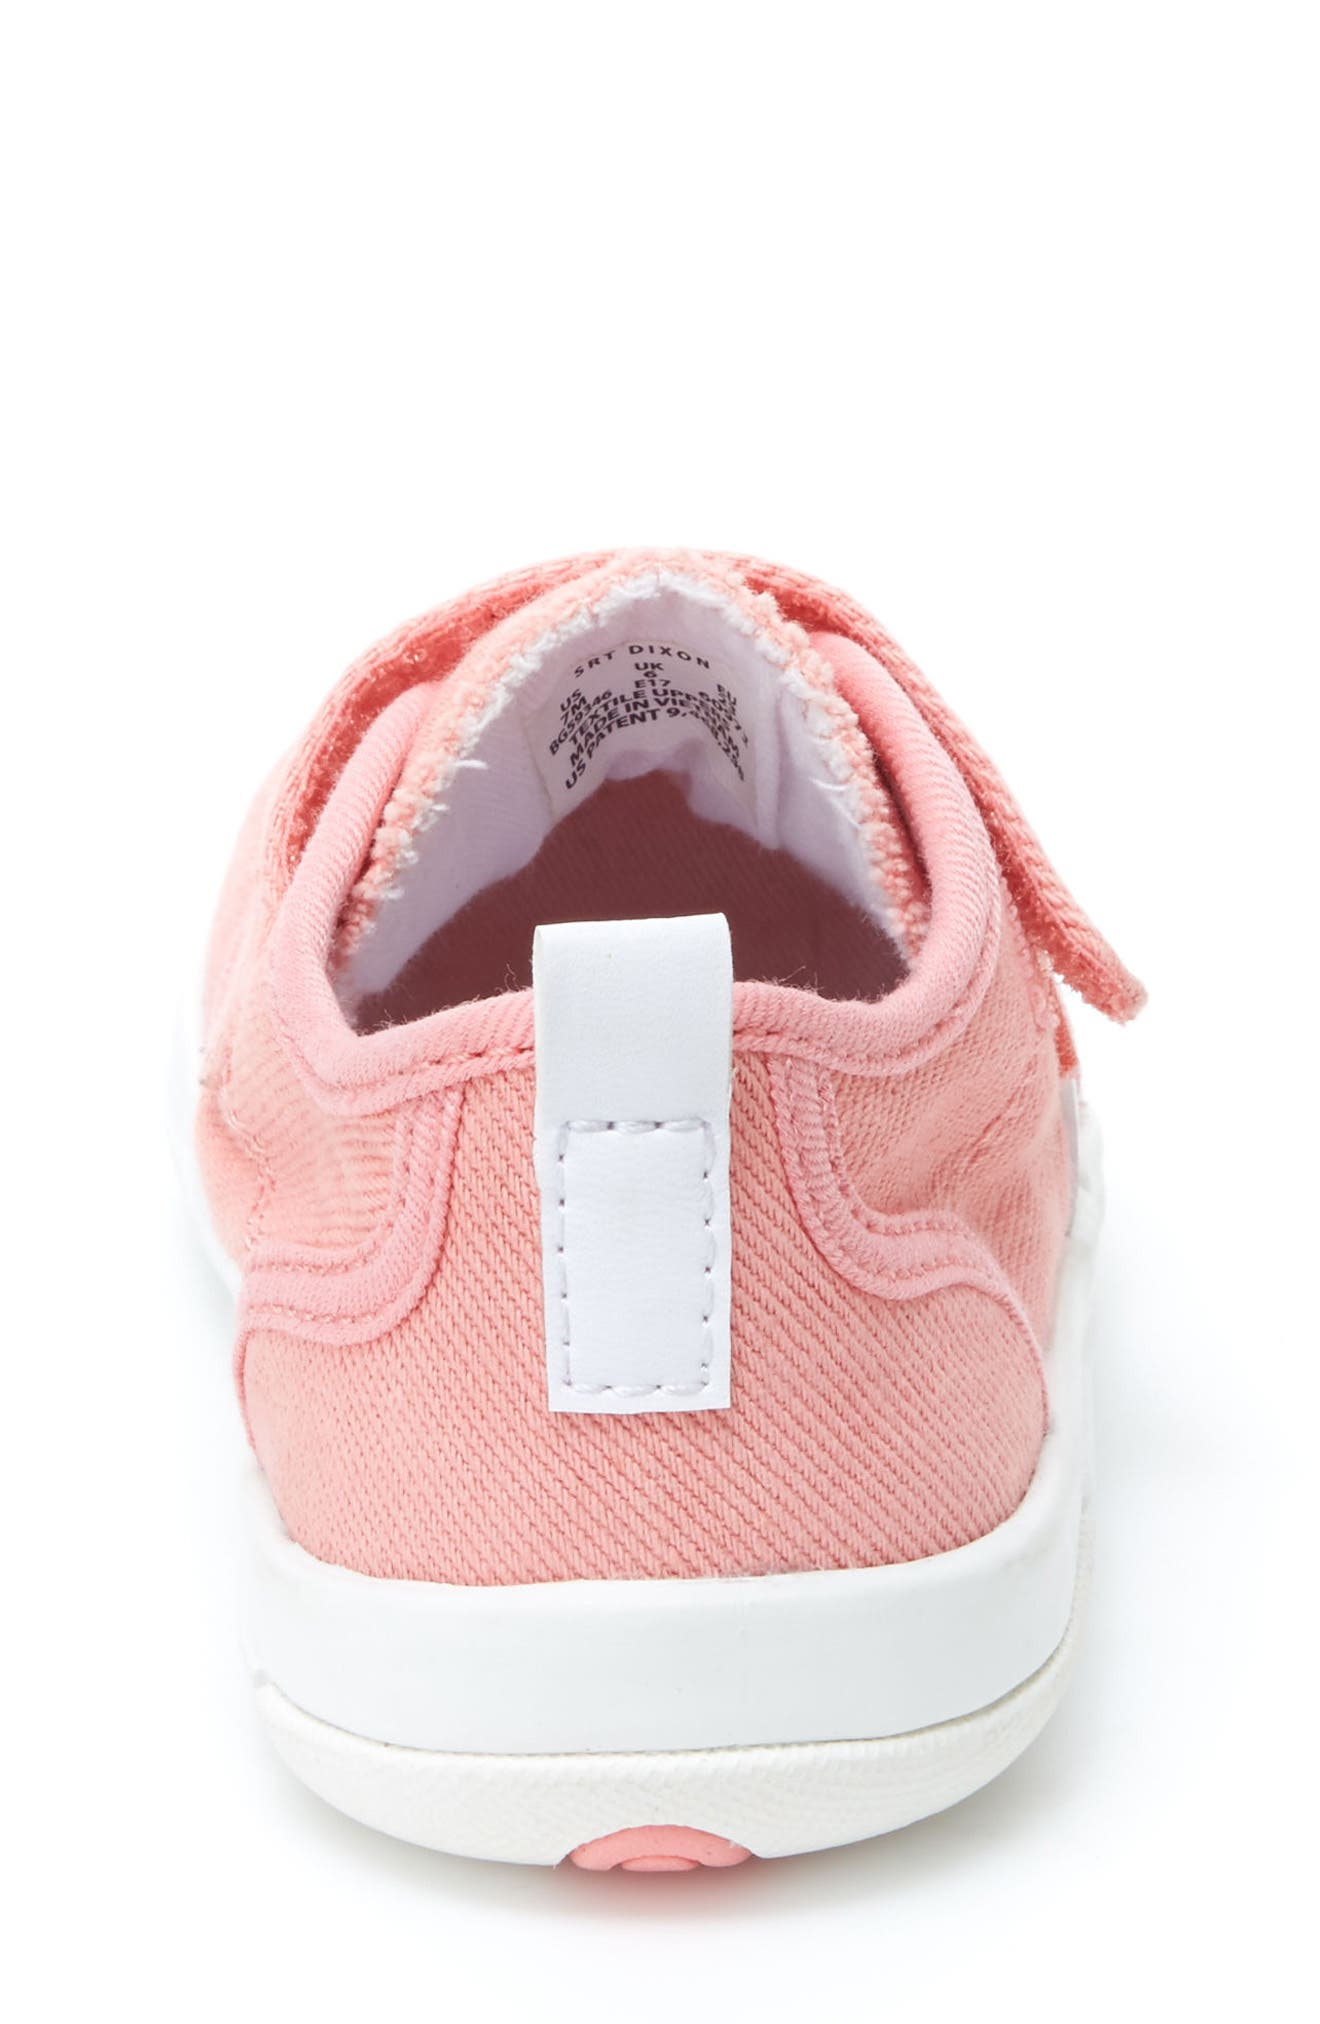 Dixon Sneaker,                             Alternate thumbnail 2, color,                             Pink